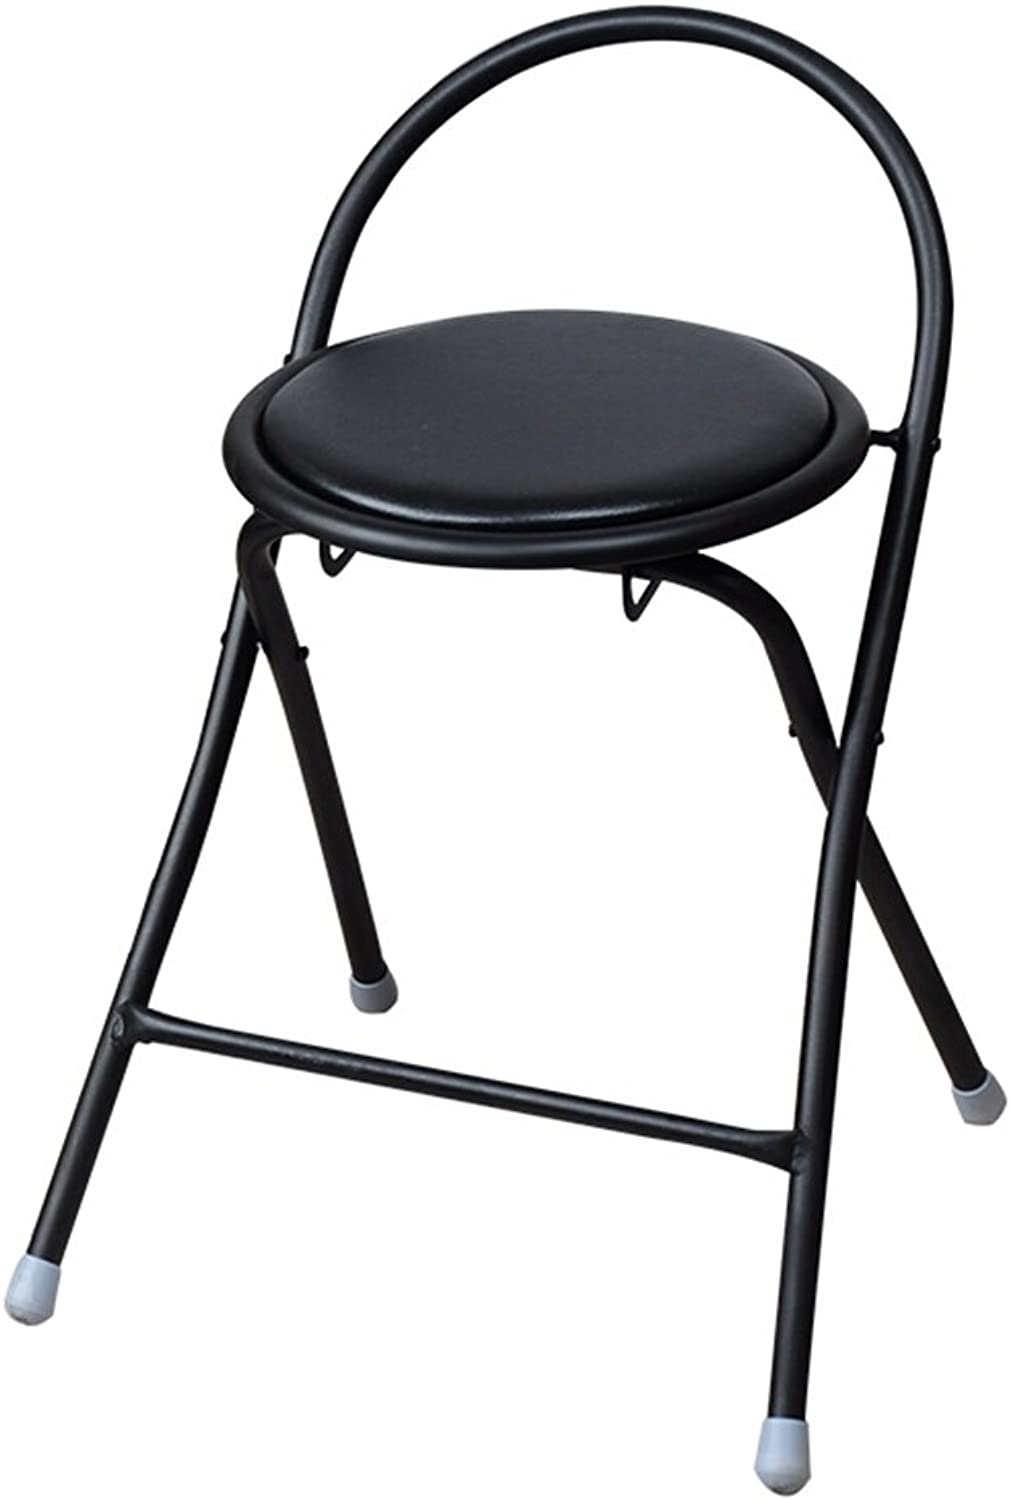 Camping Chair Folding Chair Casual Simple Home Portable Computer Dining Chair Black